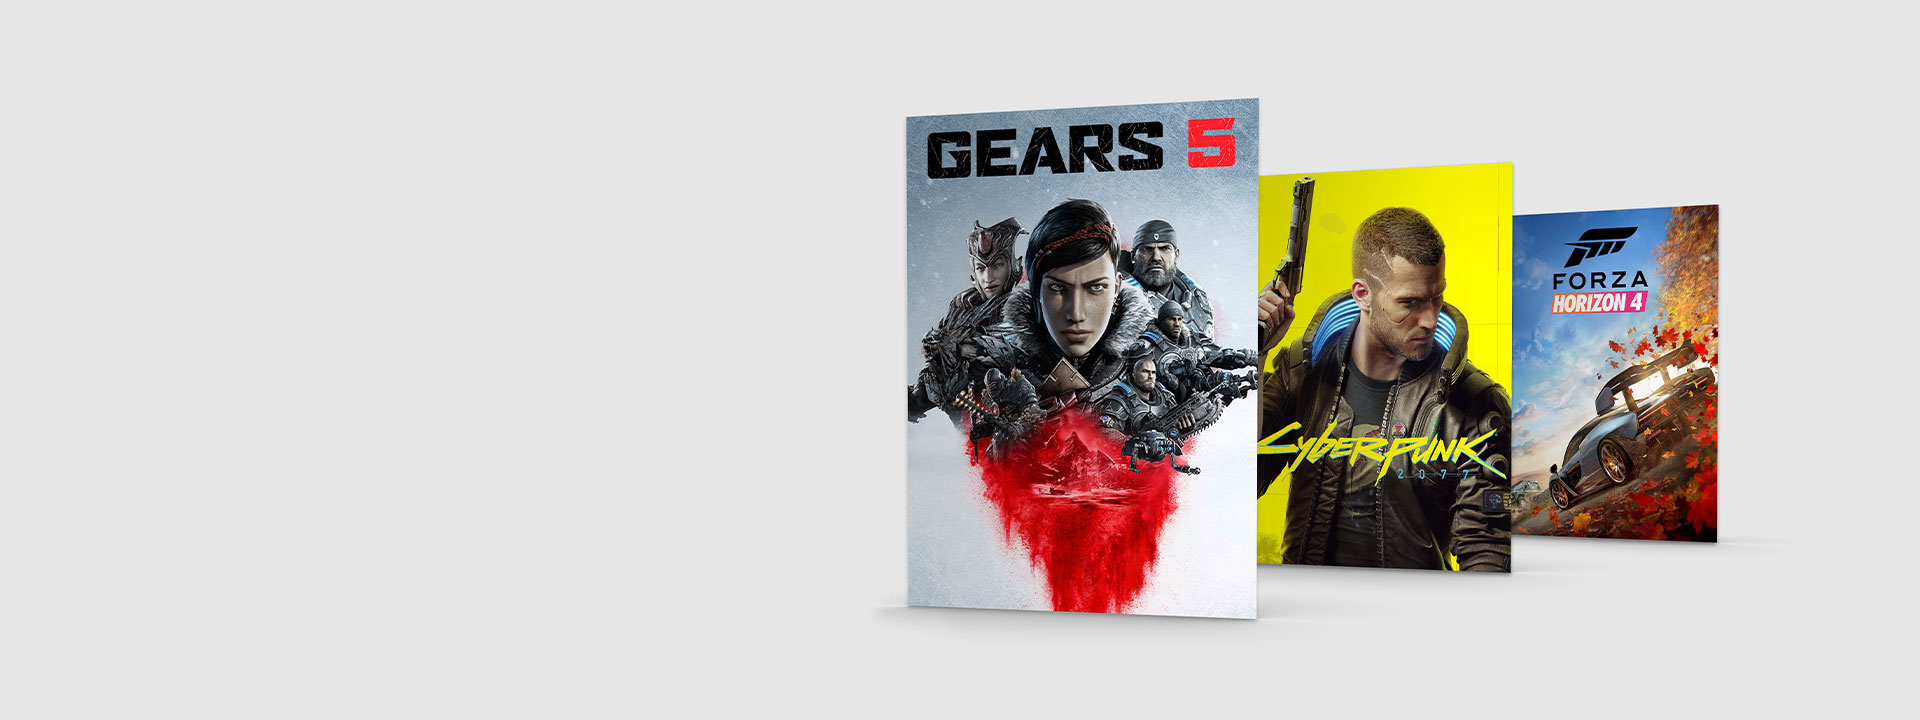 Boxshot of Gears 5, Cyberpunk and Forza Horizon 4